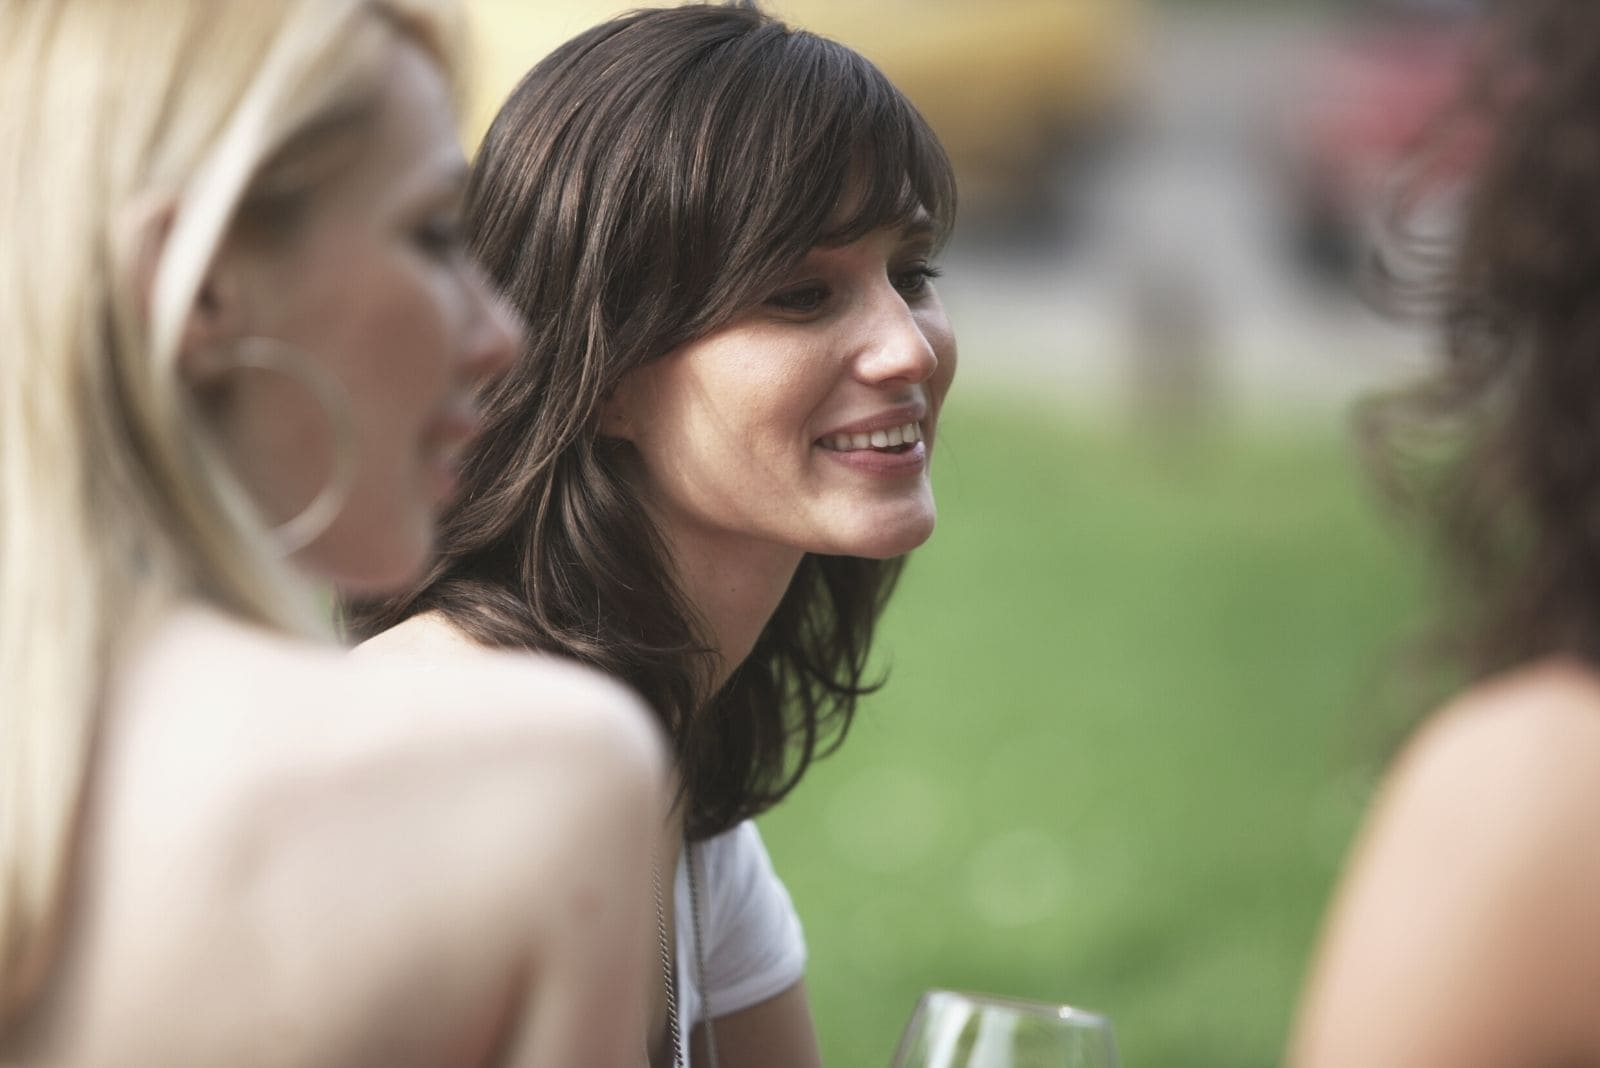 woman with friends enjoying drinking and chatting